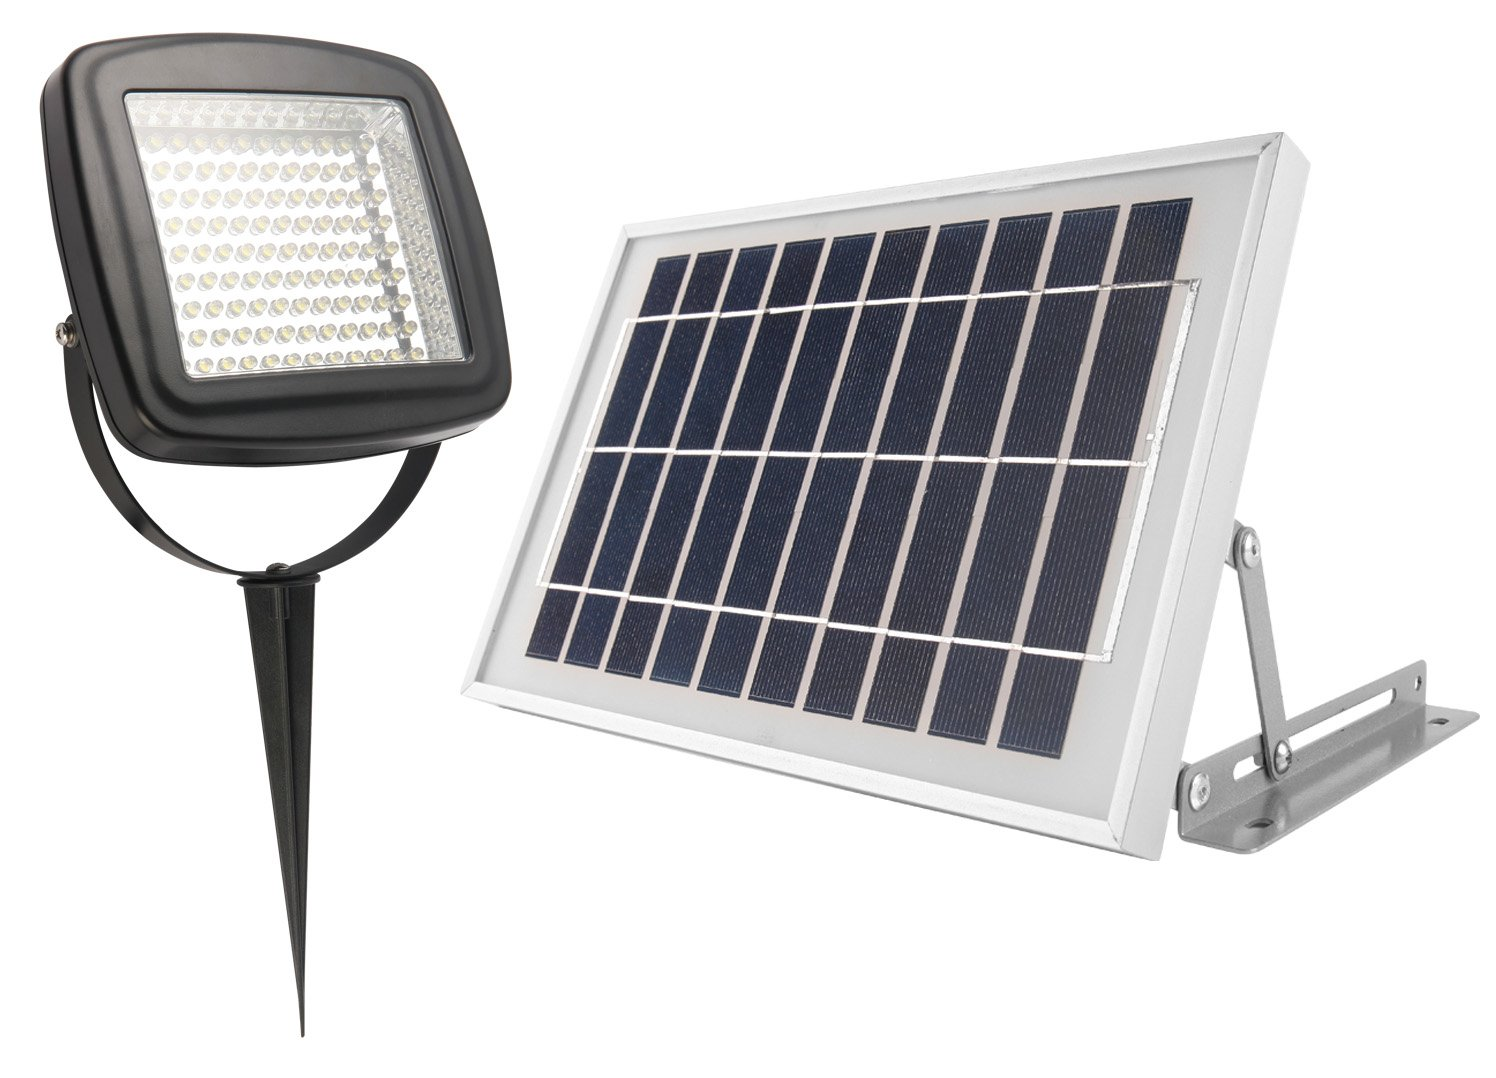 MicroSolar - NATURAL WHITE (Not Bluish) 400 LUMEN - 5W ANGLE ADJUSTABLE Solar Panel - Lithium Battery Solar Flood Light  // Wall or Ground Mounted // 2 AXES Adjustable Light Fixture